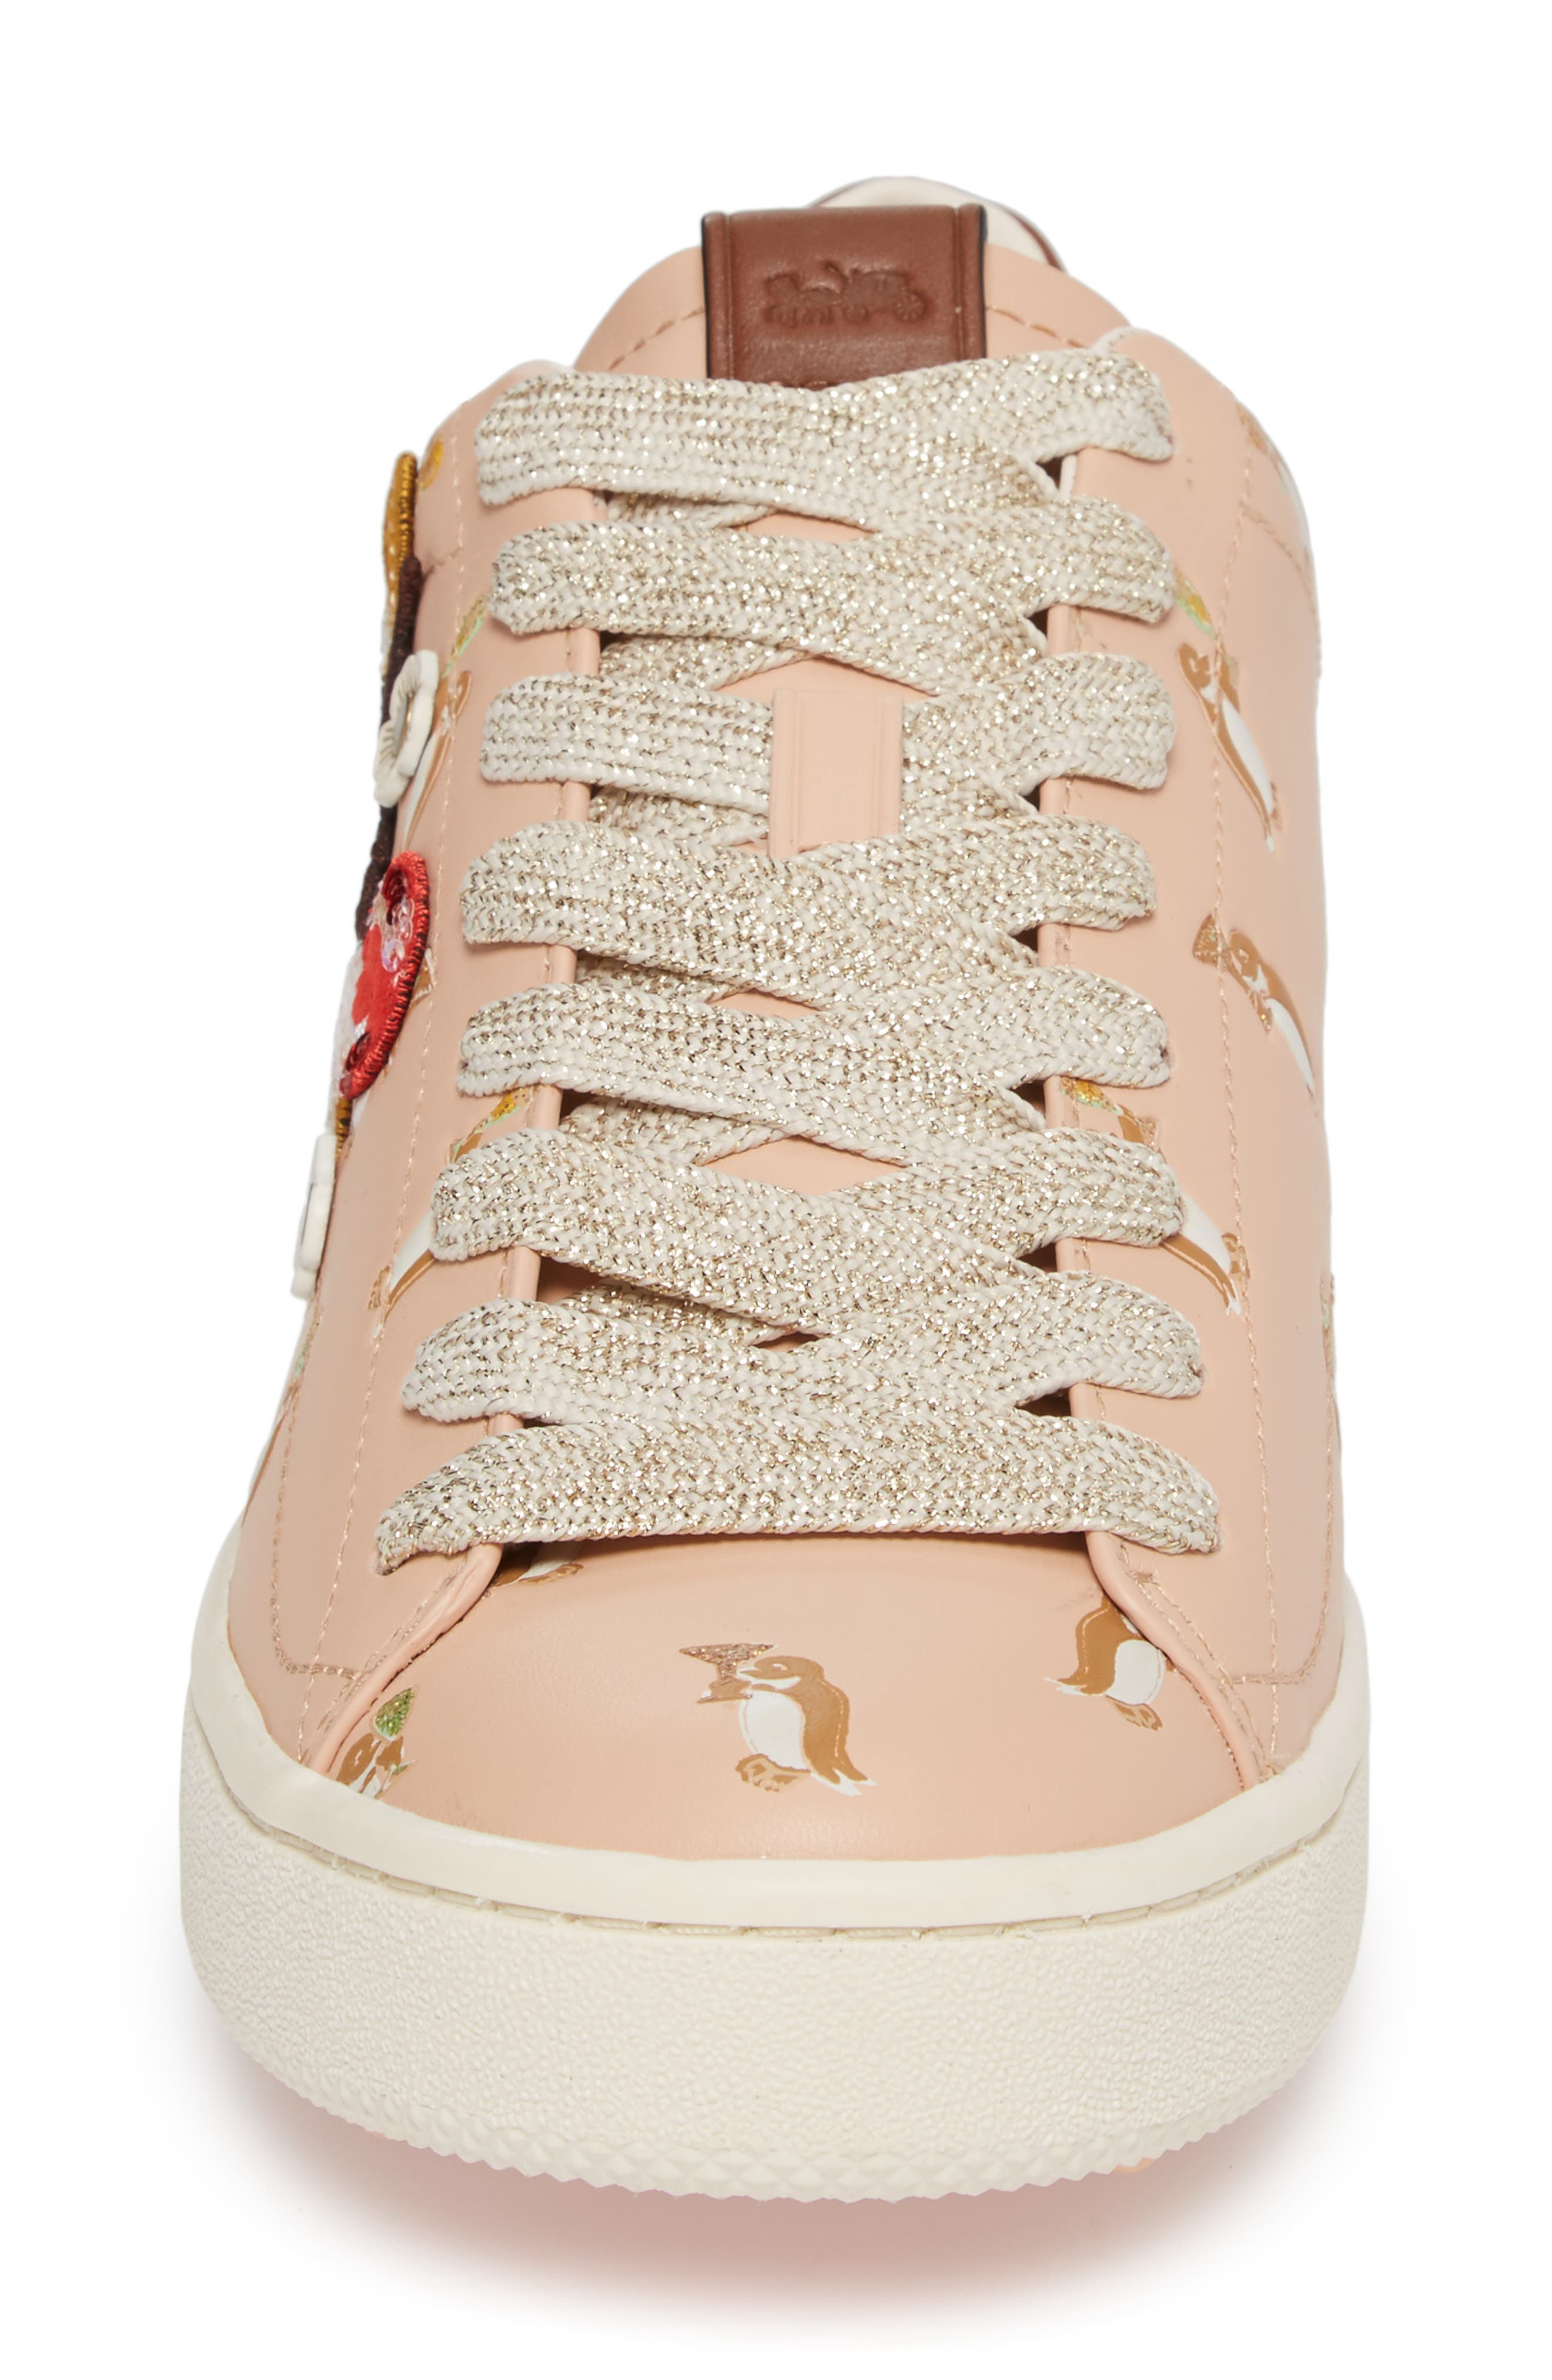 Patch Sneaker,                             Alternate thumbnail 4, color,                             Light Pink Leather